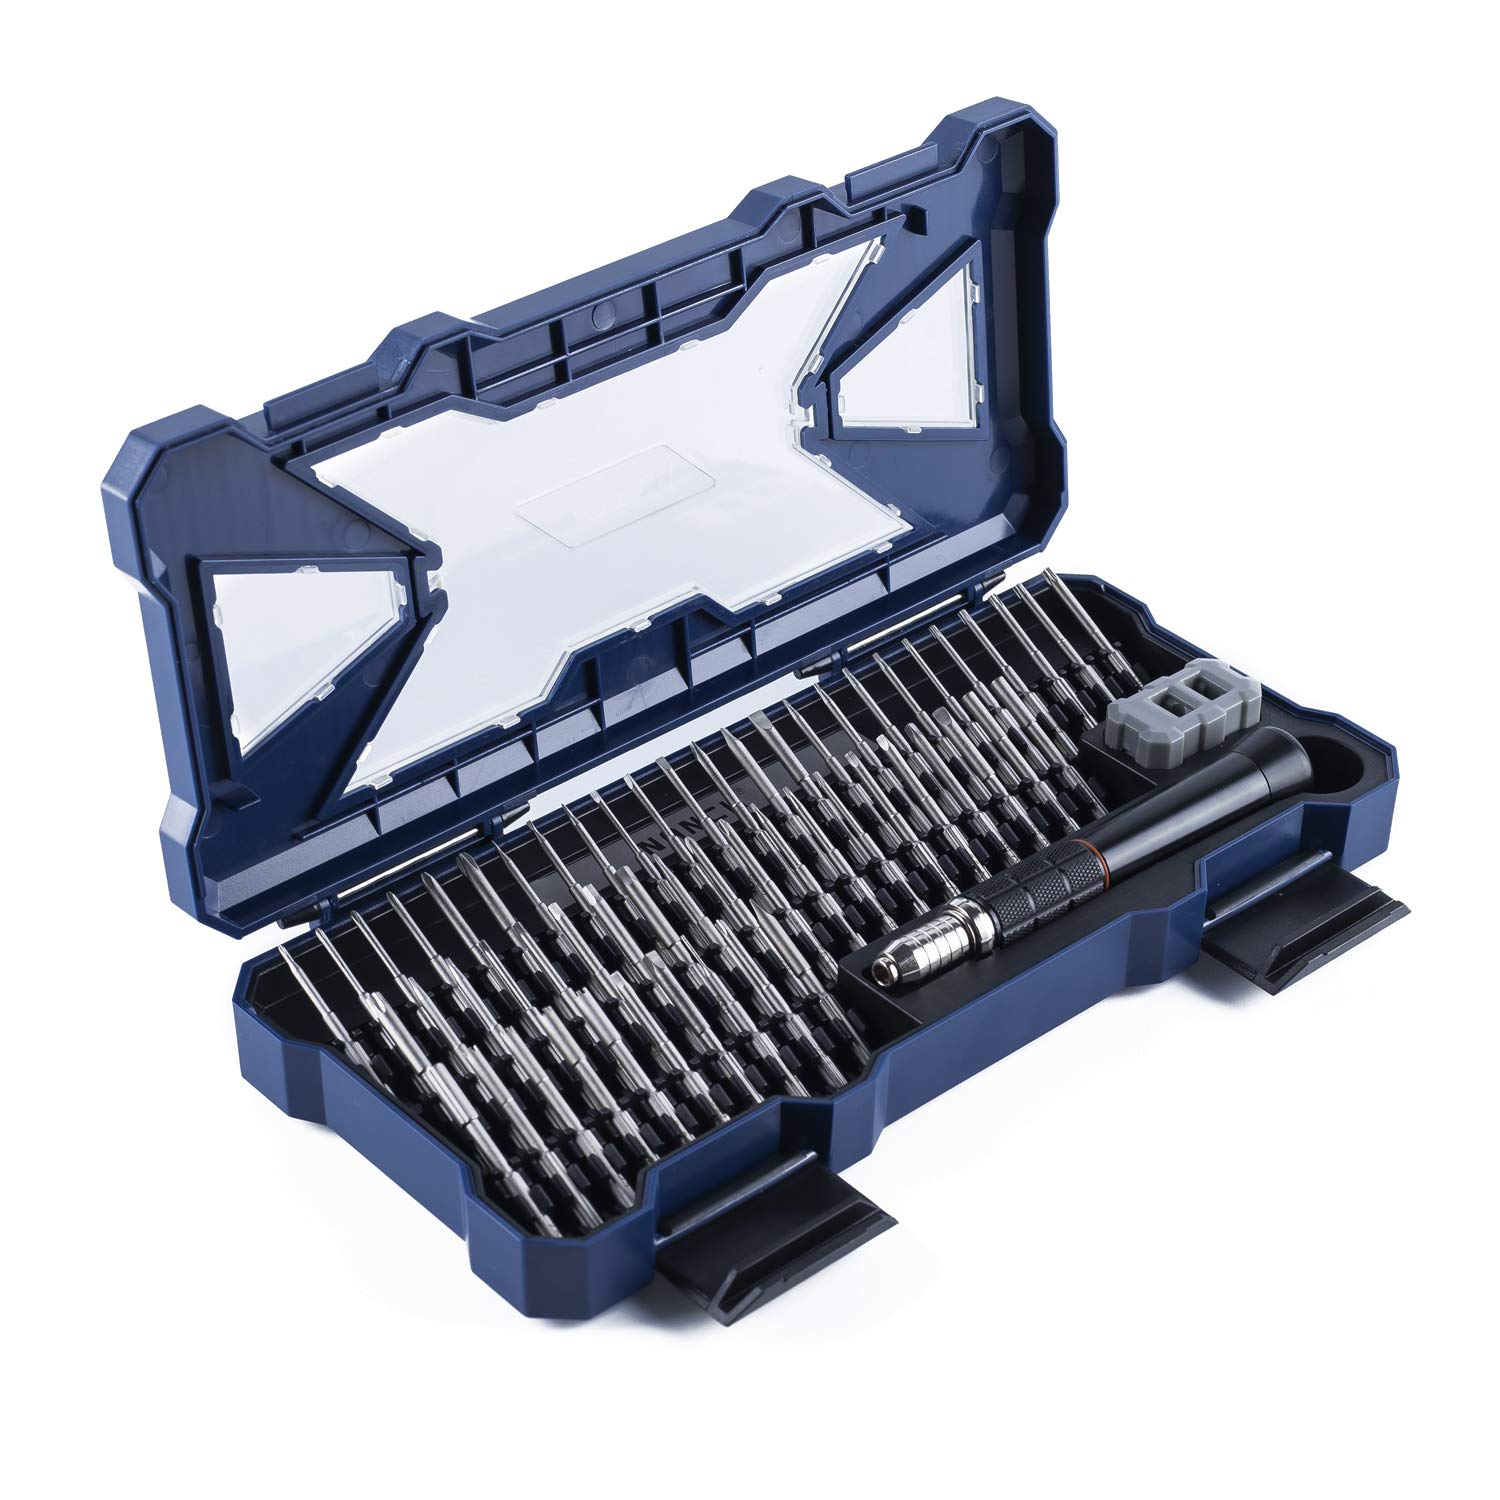 Nanch Precision Screwdriver Set Magnetic-56 in 1 Repair Tool kit Set for Electronics,Smartphone,Eyeglasses,Watch,Computer & Tablets